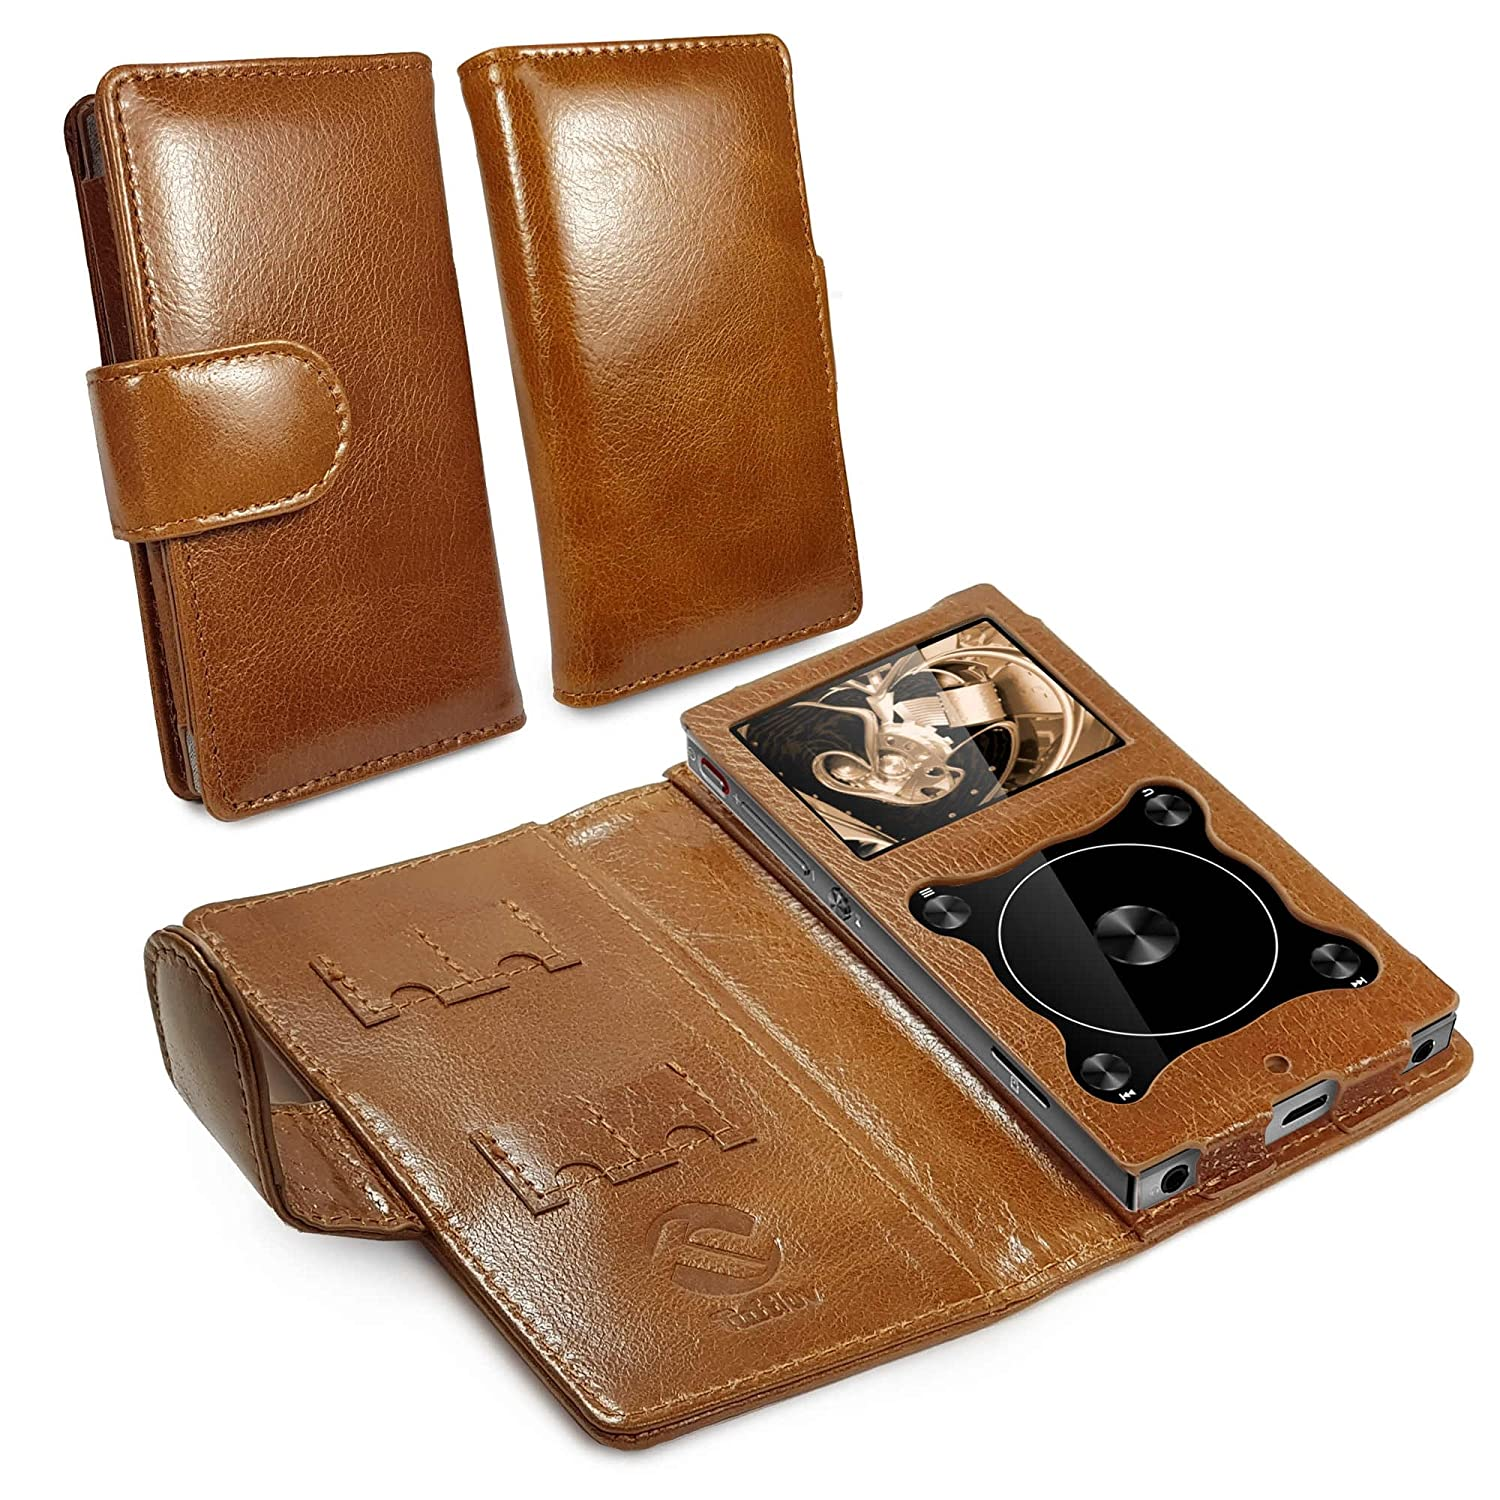 Tuff Luv Genuine Vintage Leather Case Cover for Fiio X3 Mark III 3 - MP3 - Brown A11_81_5055261847388